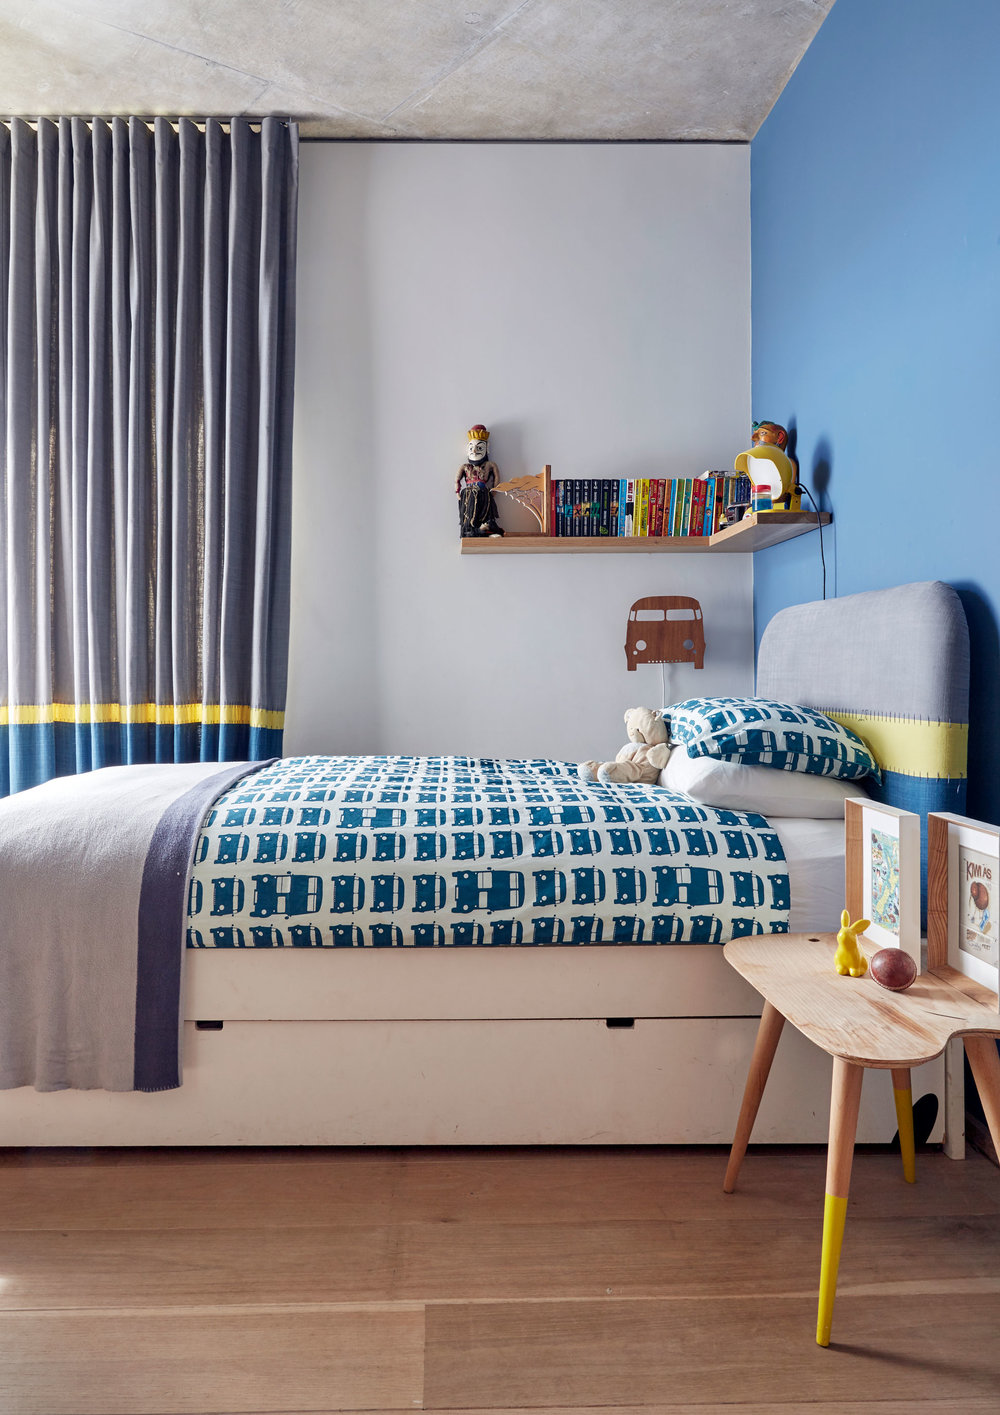 Matt and Victoria‮!&‬s son Jonty‮!&‬s bedroom carries the raw materiality evident in the wood and concrete throughout the rest of the house‭, ‬and brightens it with muted primary colours‭.‬